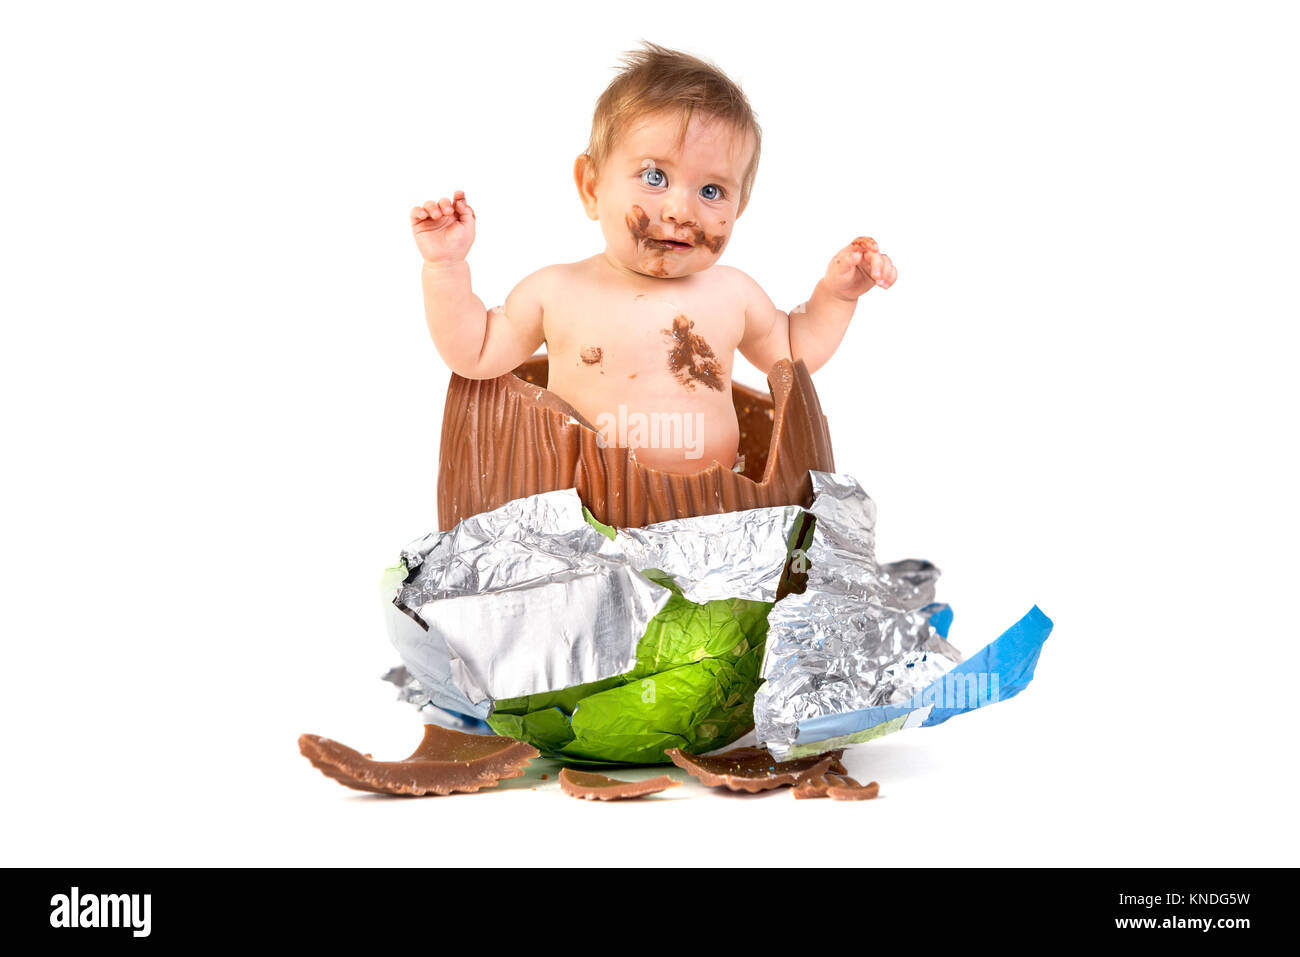 Sweet baby inside an easter egg isolated in white stock photo sweet baby inside an easter egg isolated in white negle